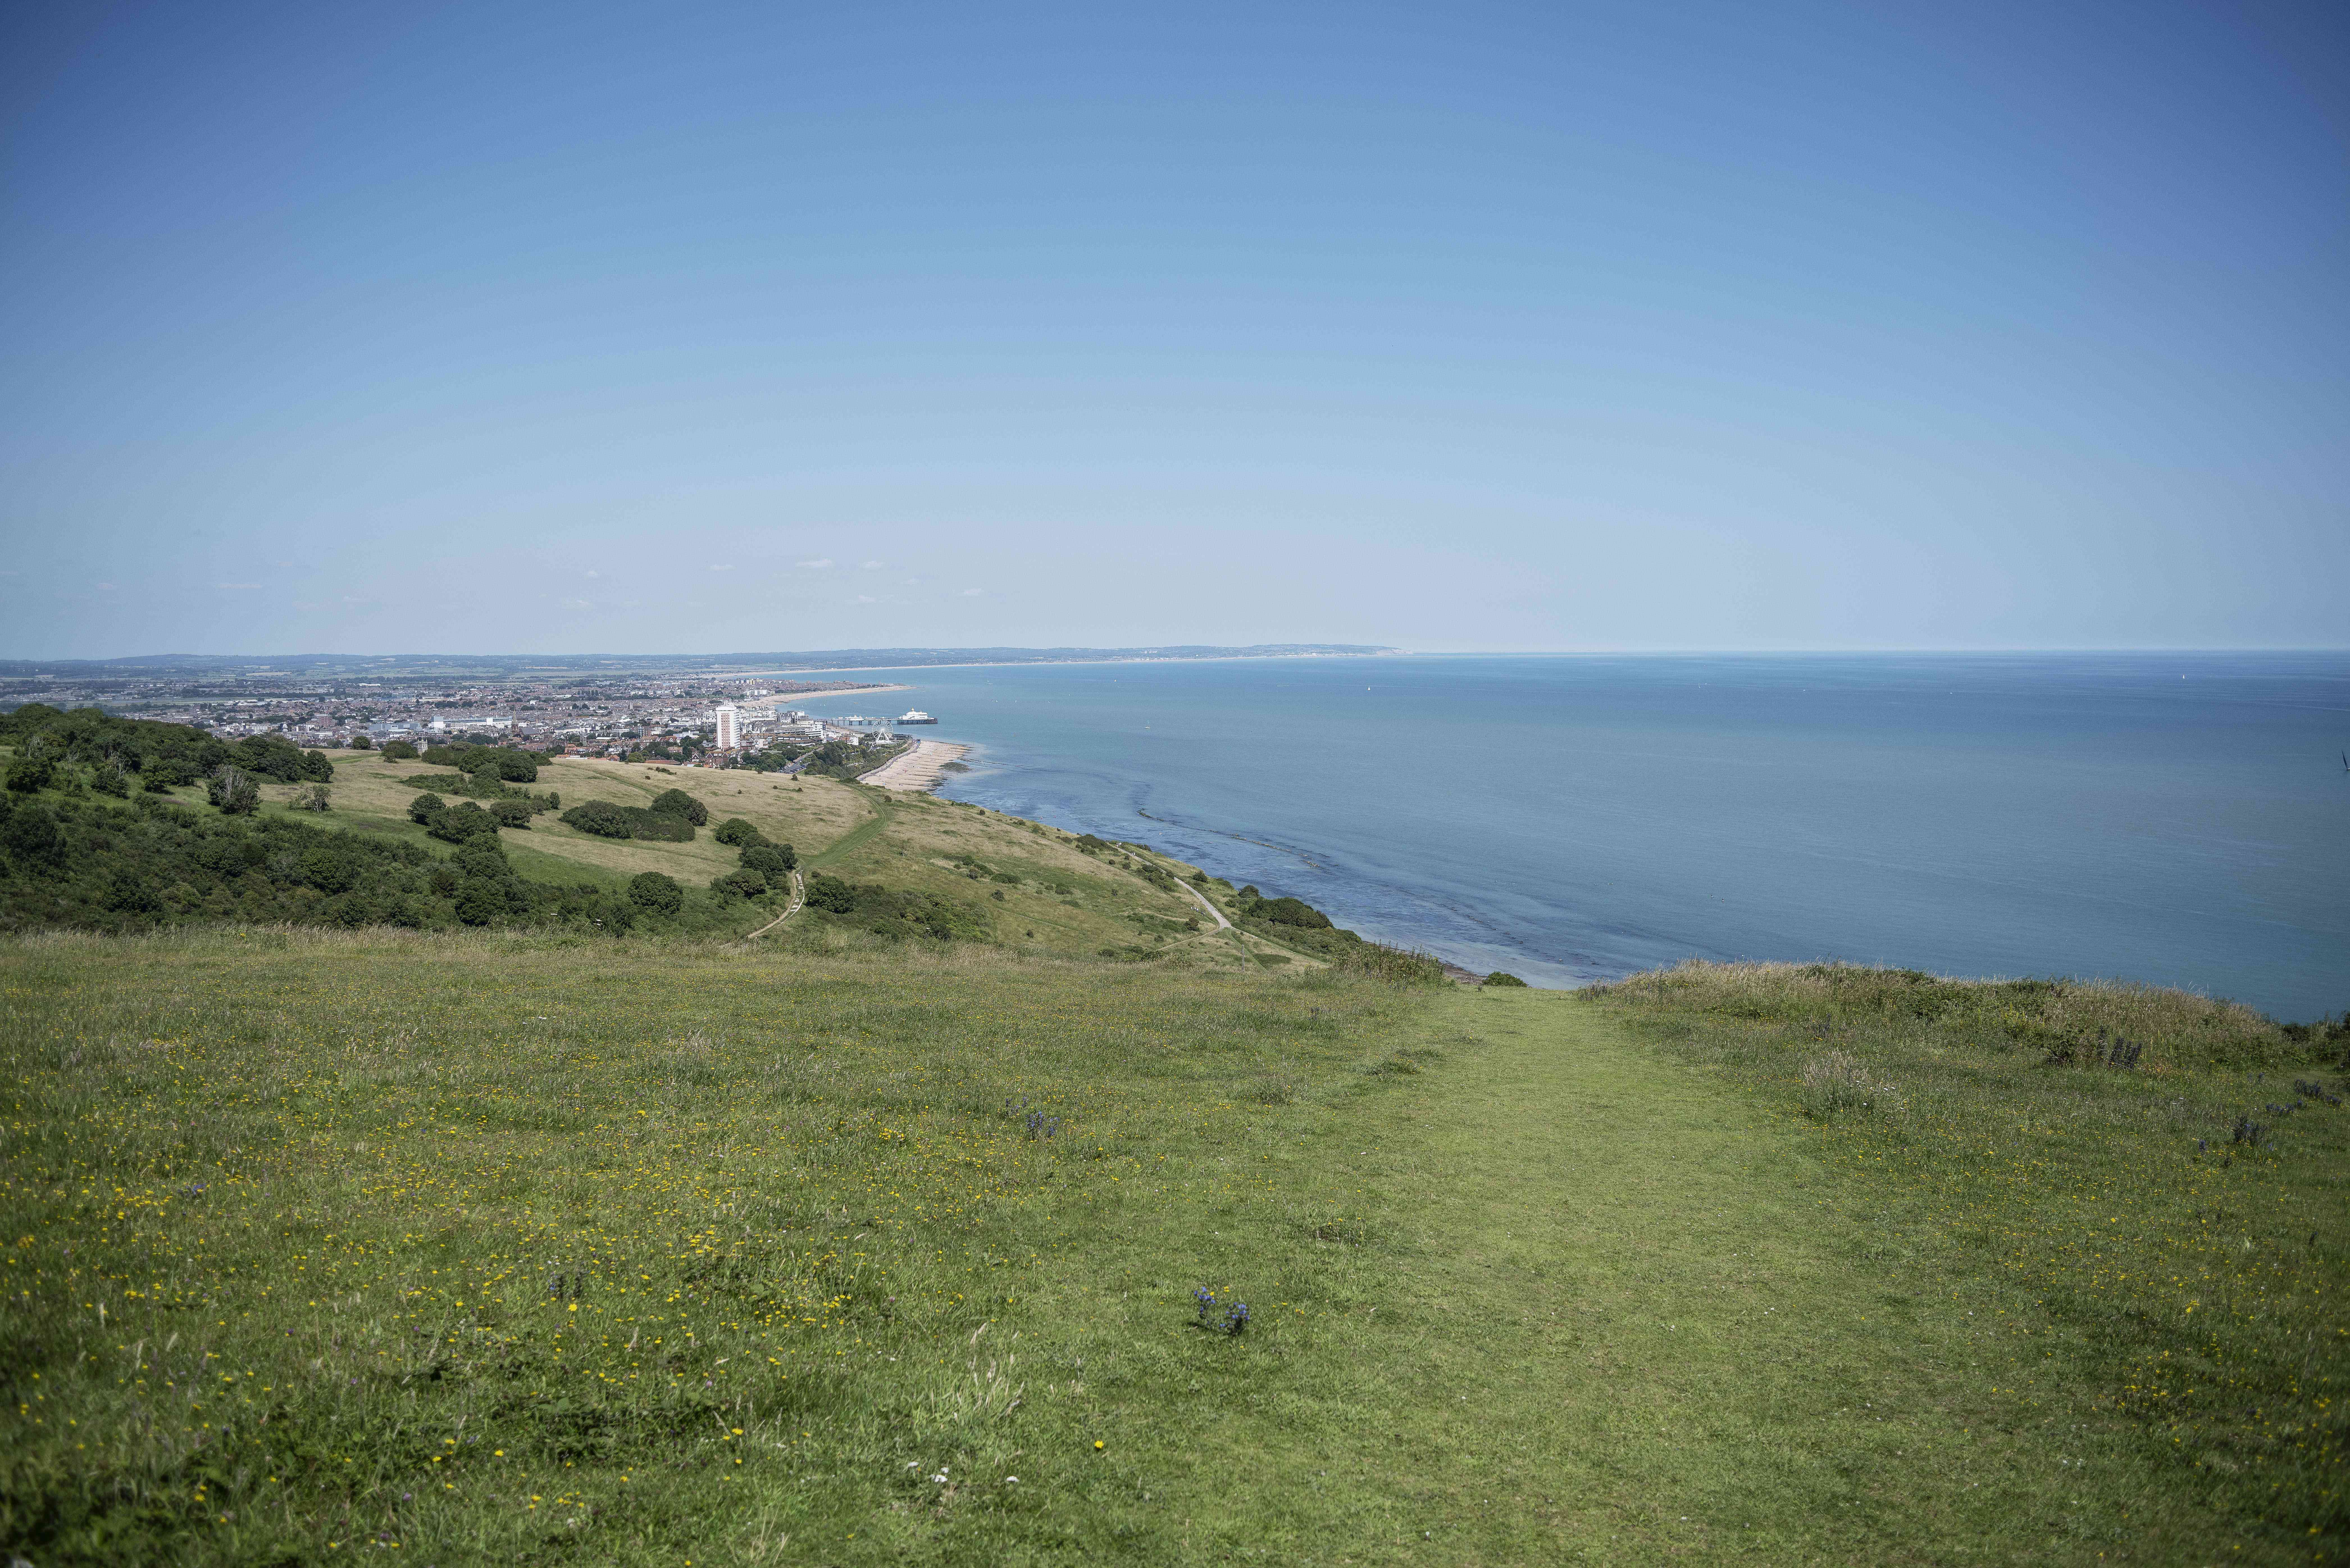 South Downs Way in Eastbourne, England